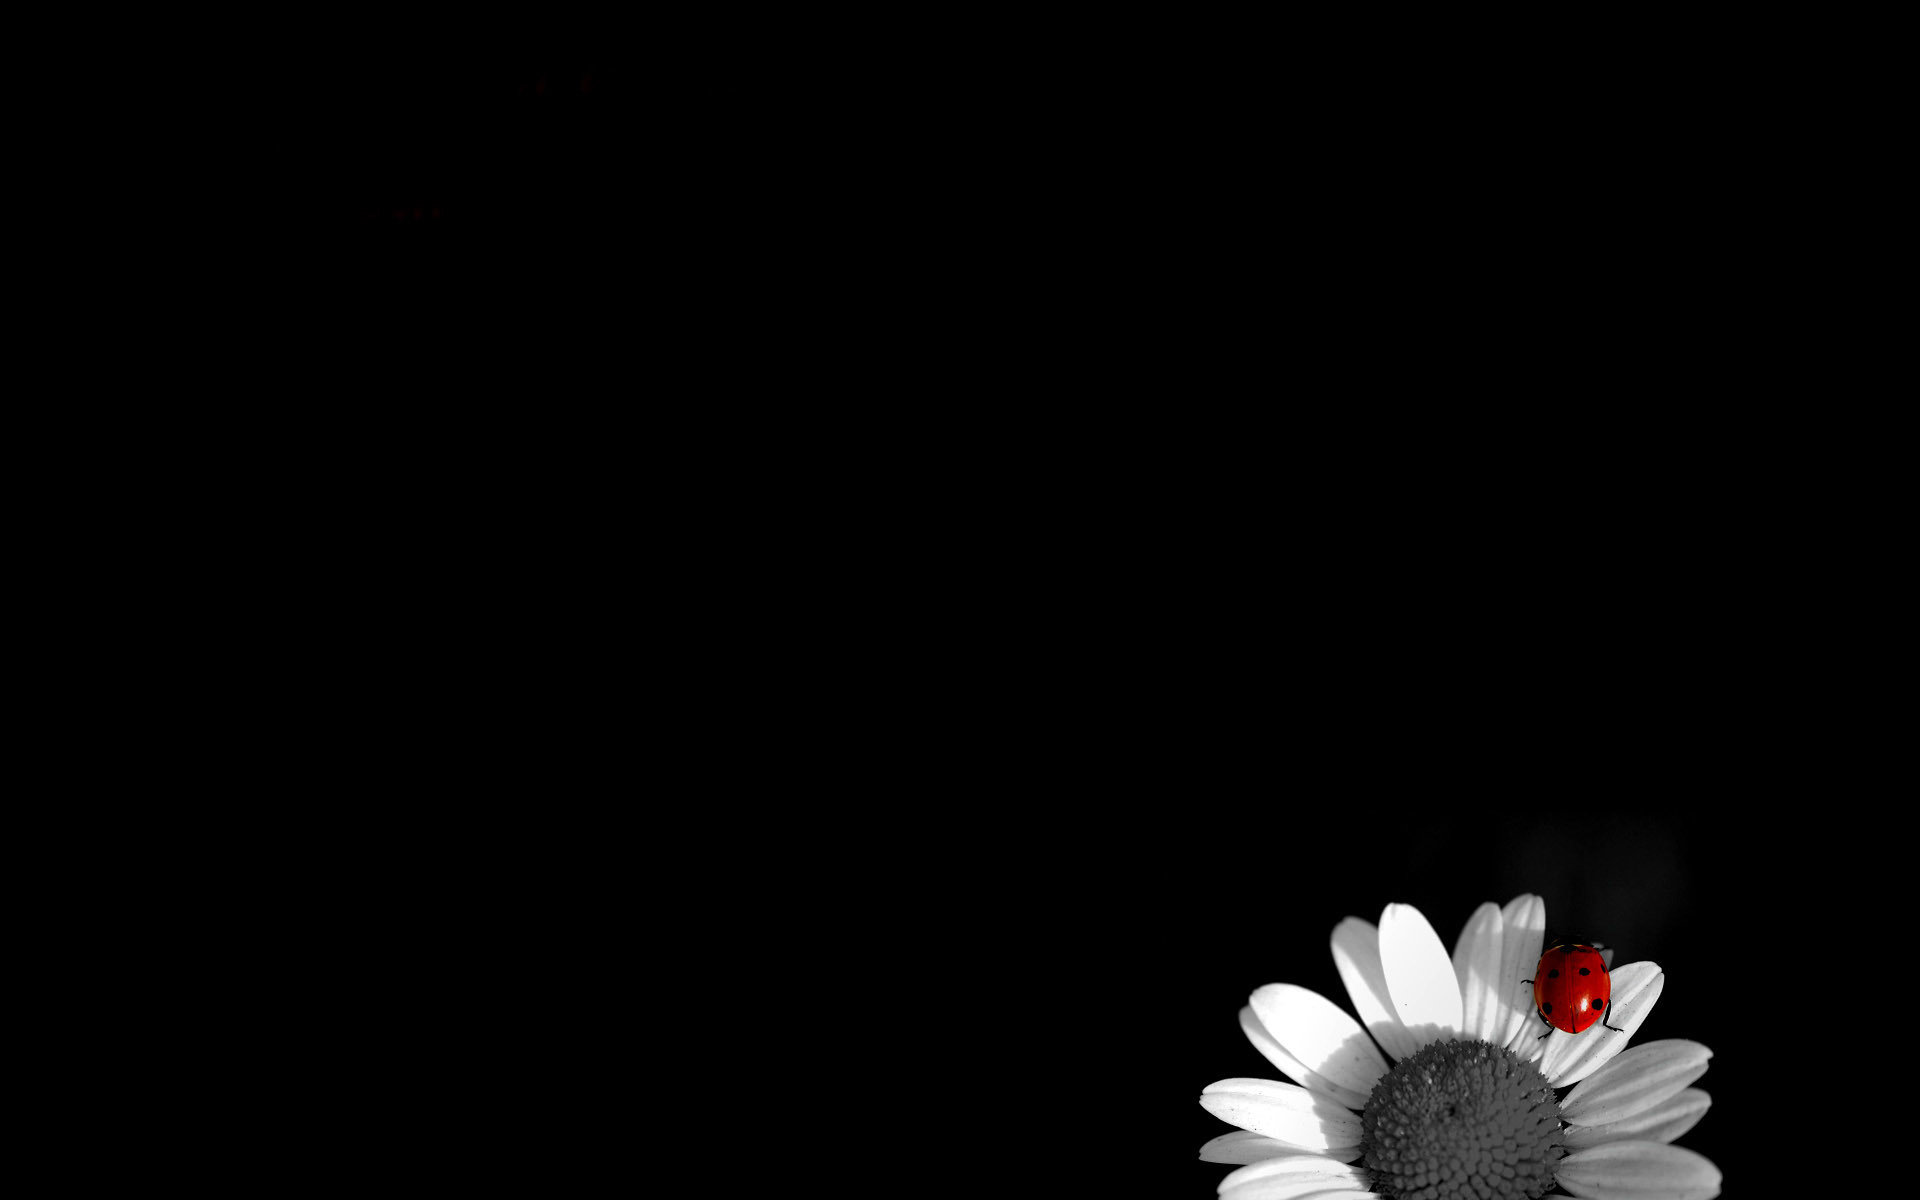 Black and white roses wallpaper 56 images 1920x1200 black rose wallpapers mightylinksfo